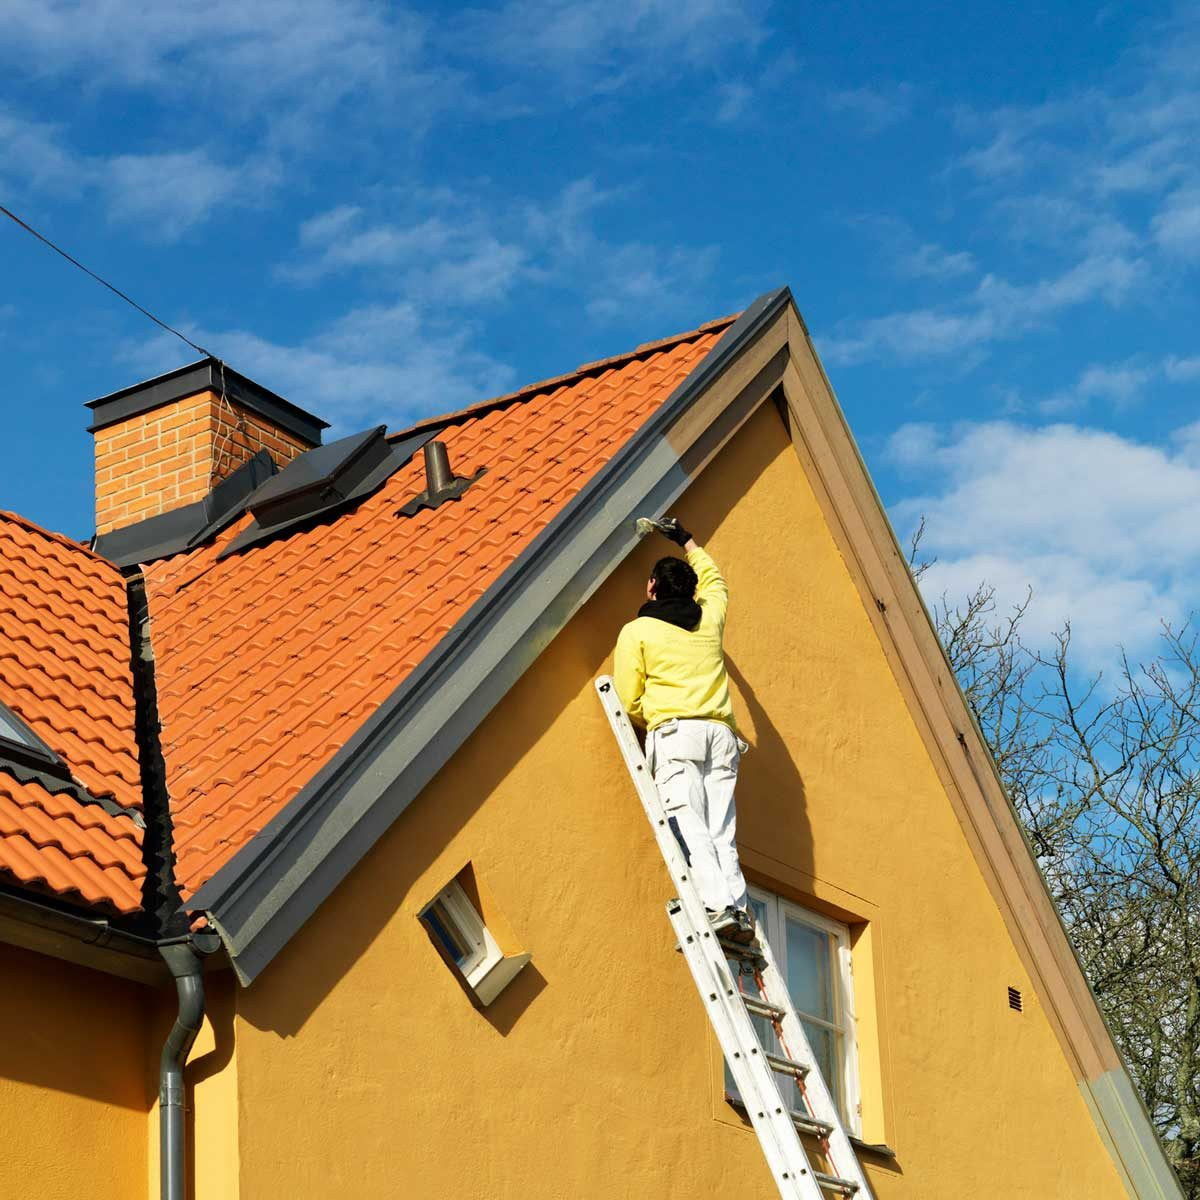 Paint when it's Hot Out Gettyimages 141469247